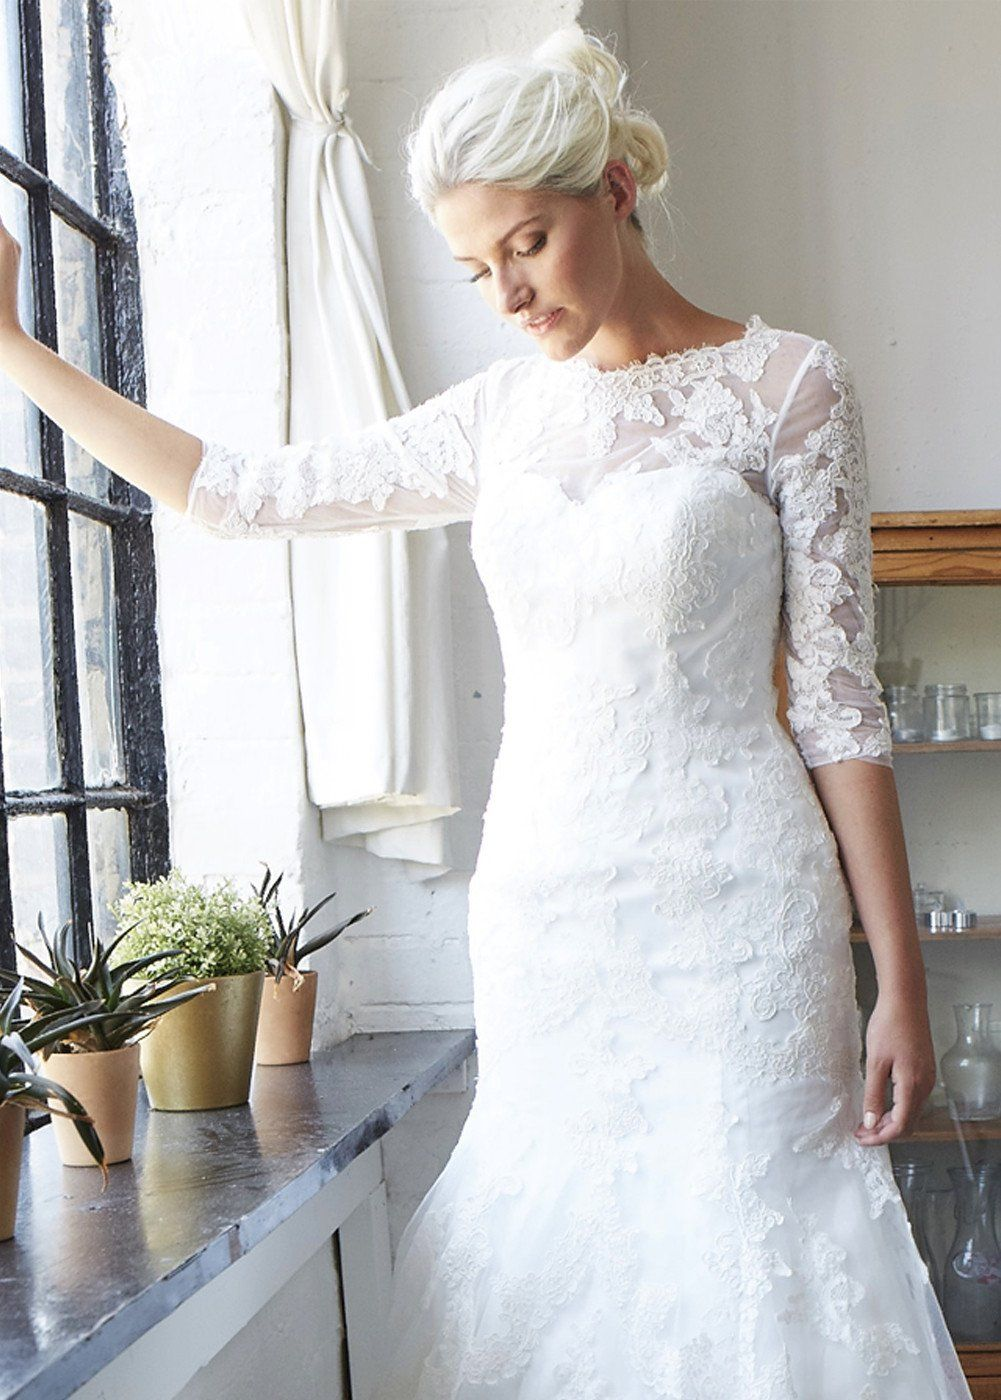 Mermaid wedding dresses with lace   Sleeve Lace Mermaid Wedding Dress  ANEBERRY Wedding Dresses